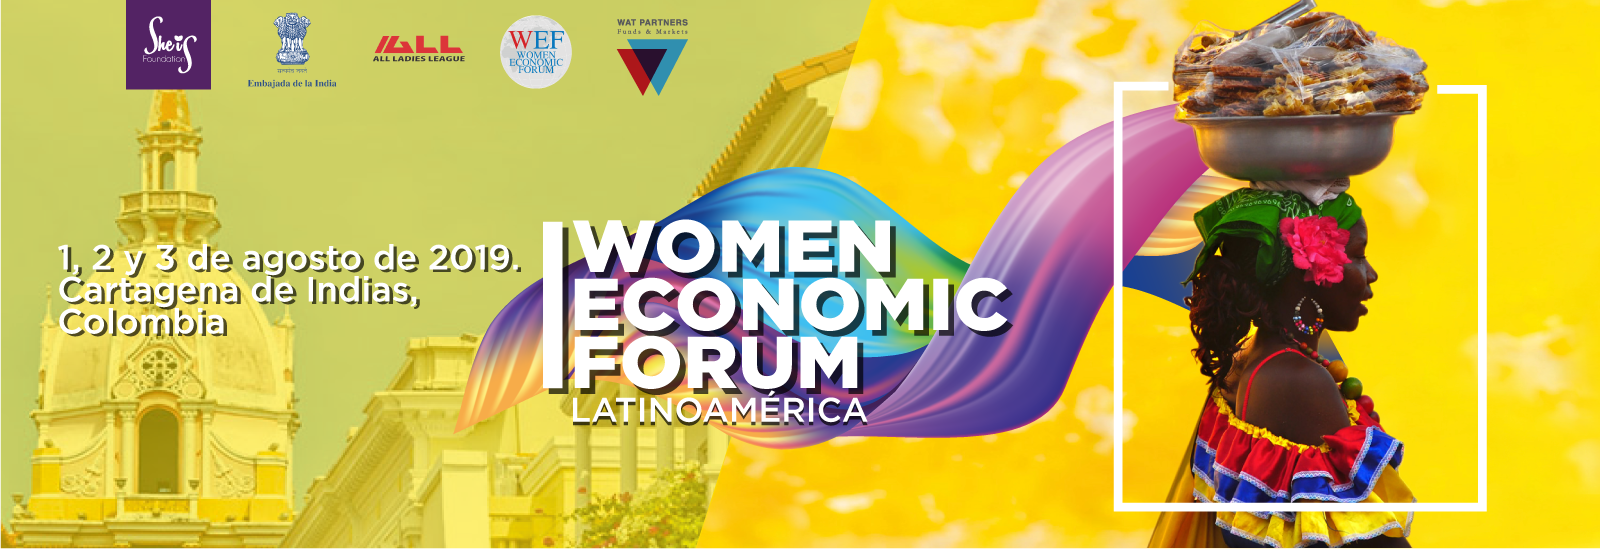 Image Event Women Economic Forum Latin America